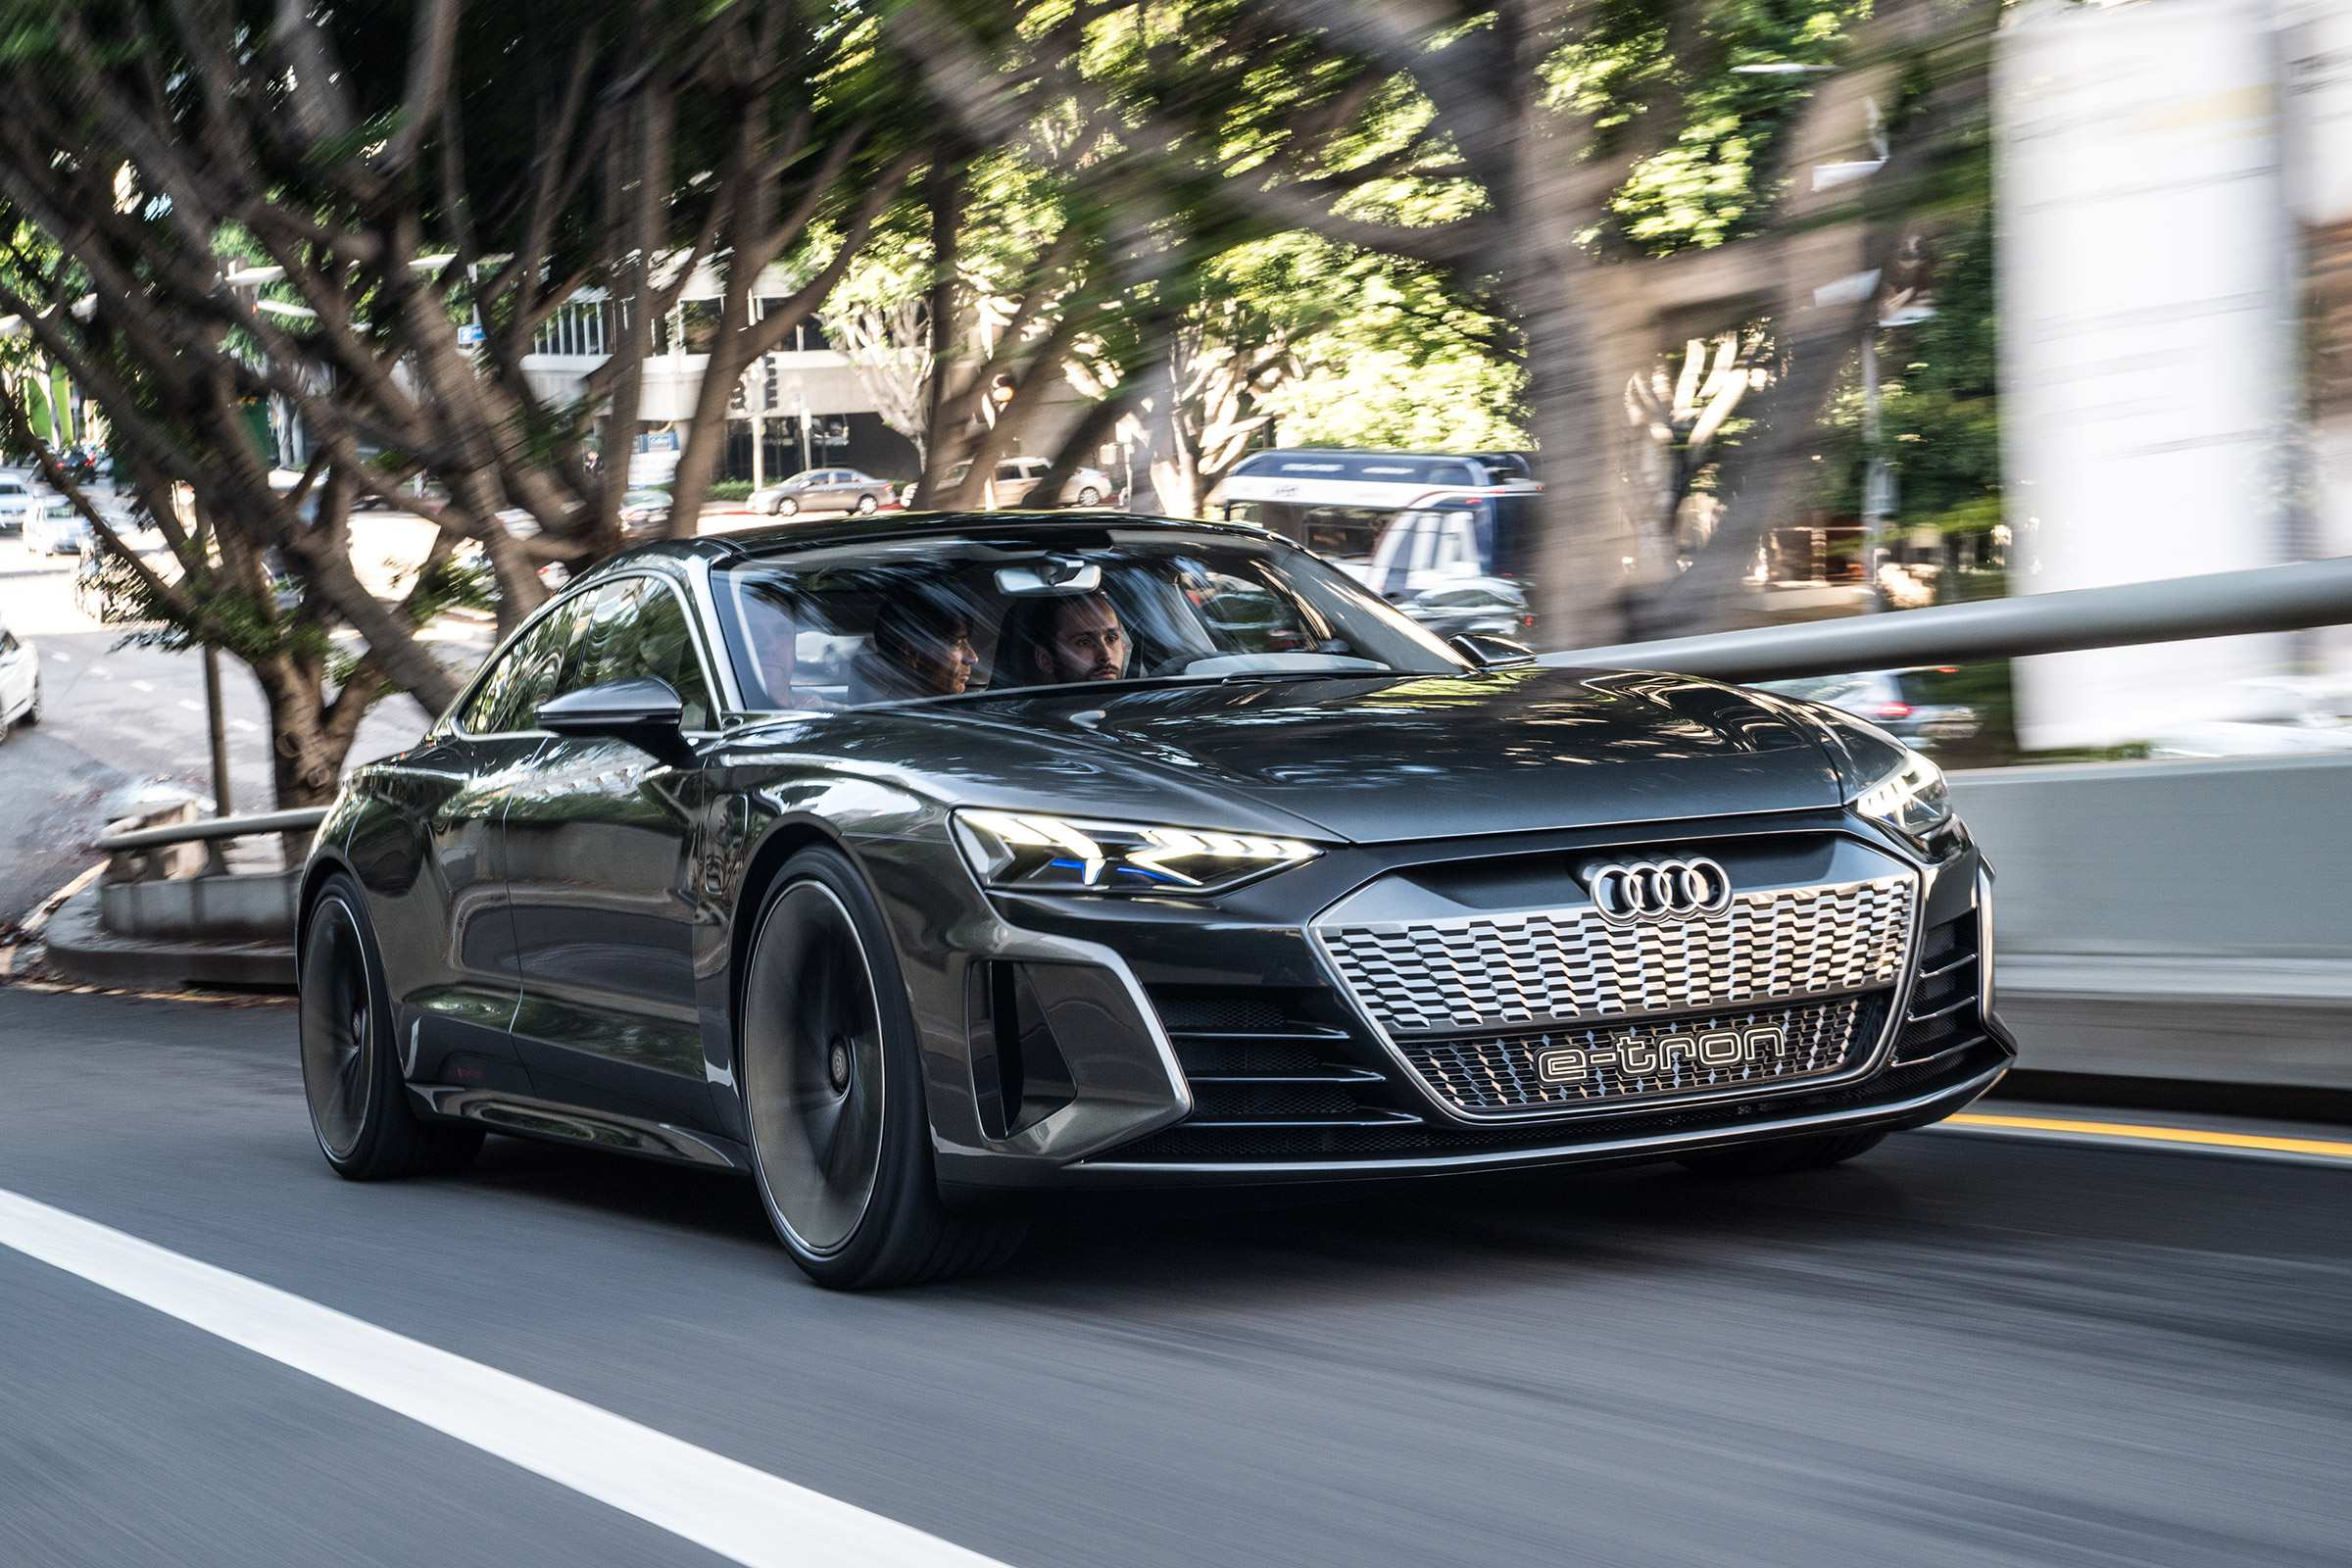 70 All New 2020 Audi E Tron Gt Wallpaper For 2020 Audi E